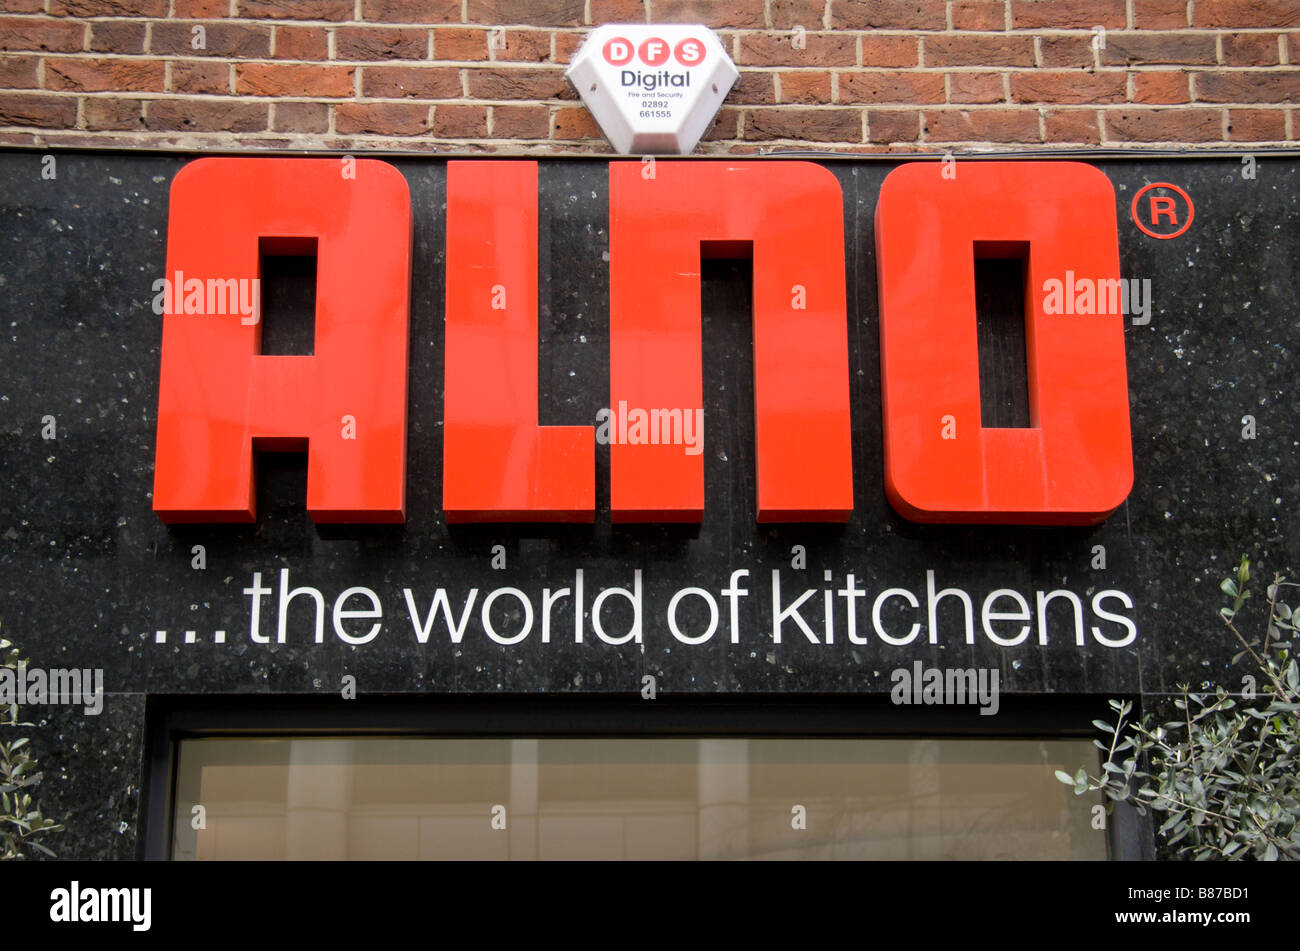 A shop sign above Alno Kitchens shop in Marylebone, London. Jan 2009 - Stock Image